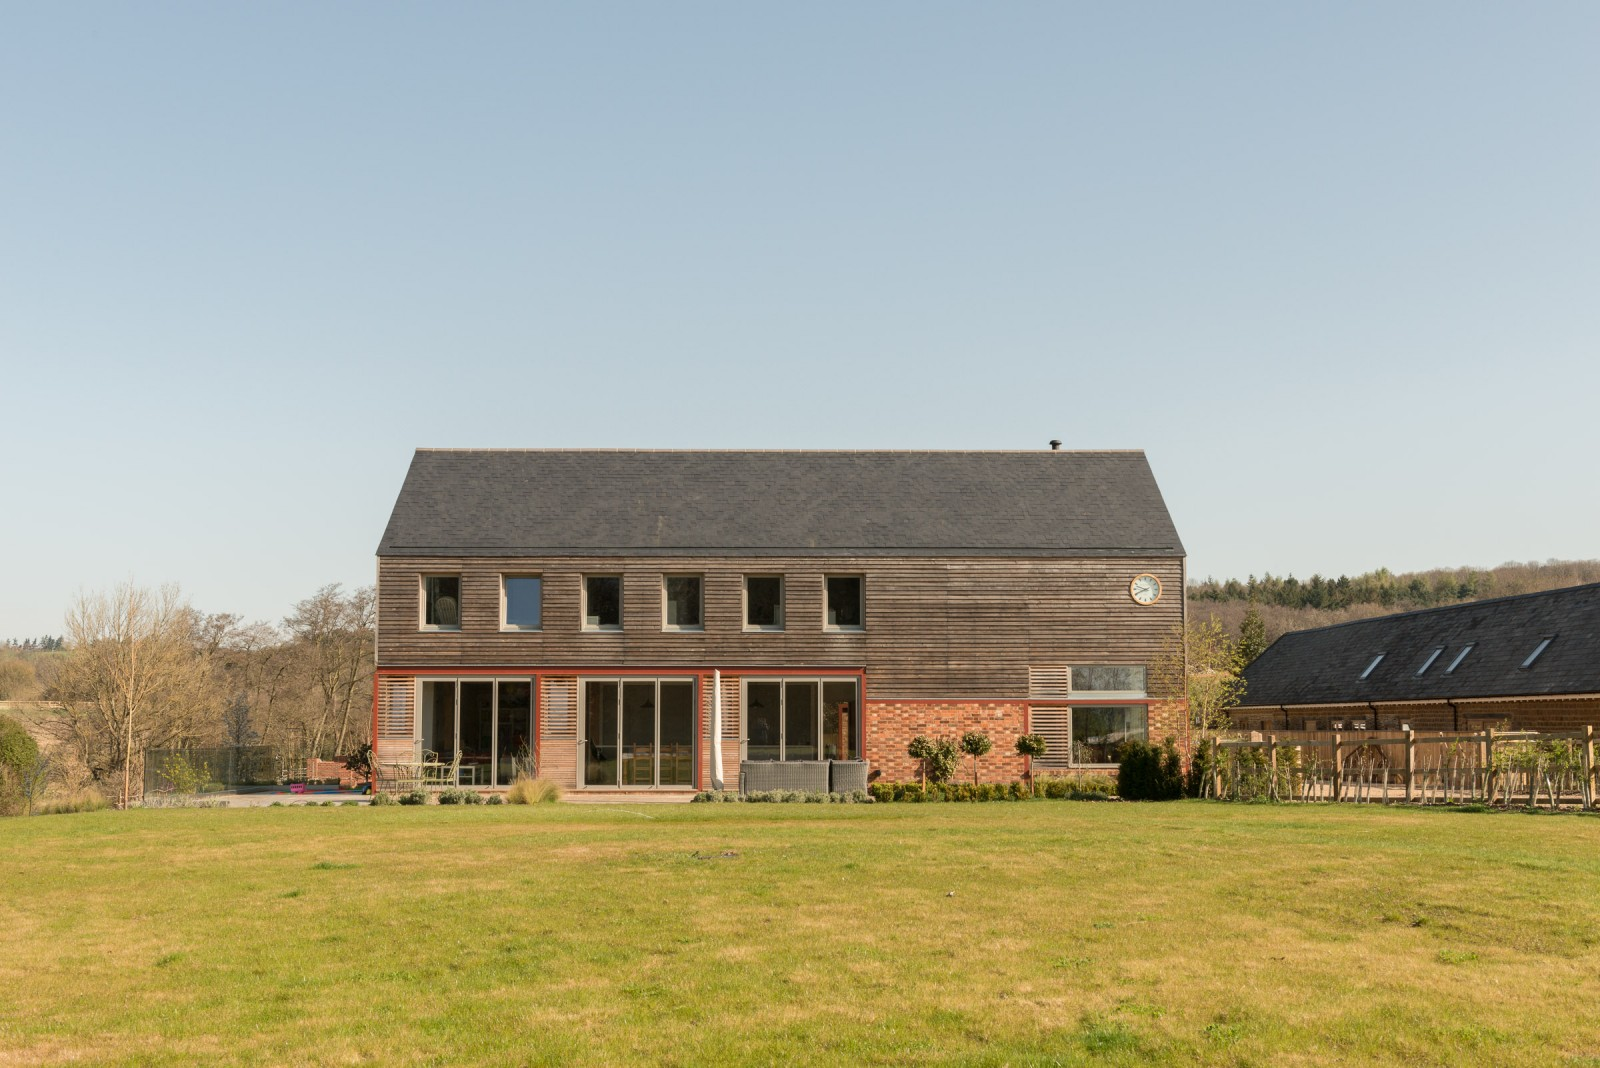 Modern farmhouse with timber-clad second floor and brick-clad main floor on two acres of land.